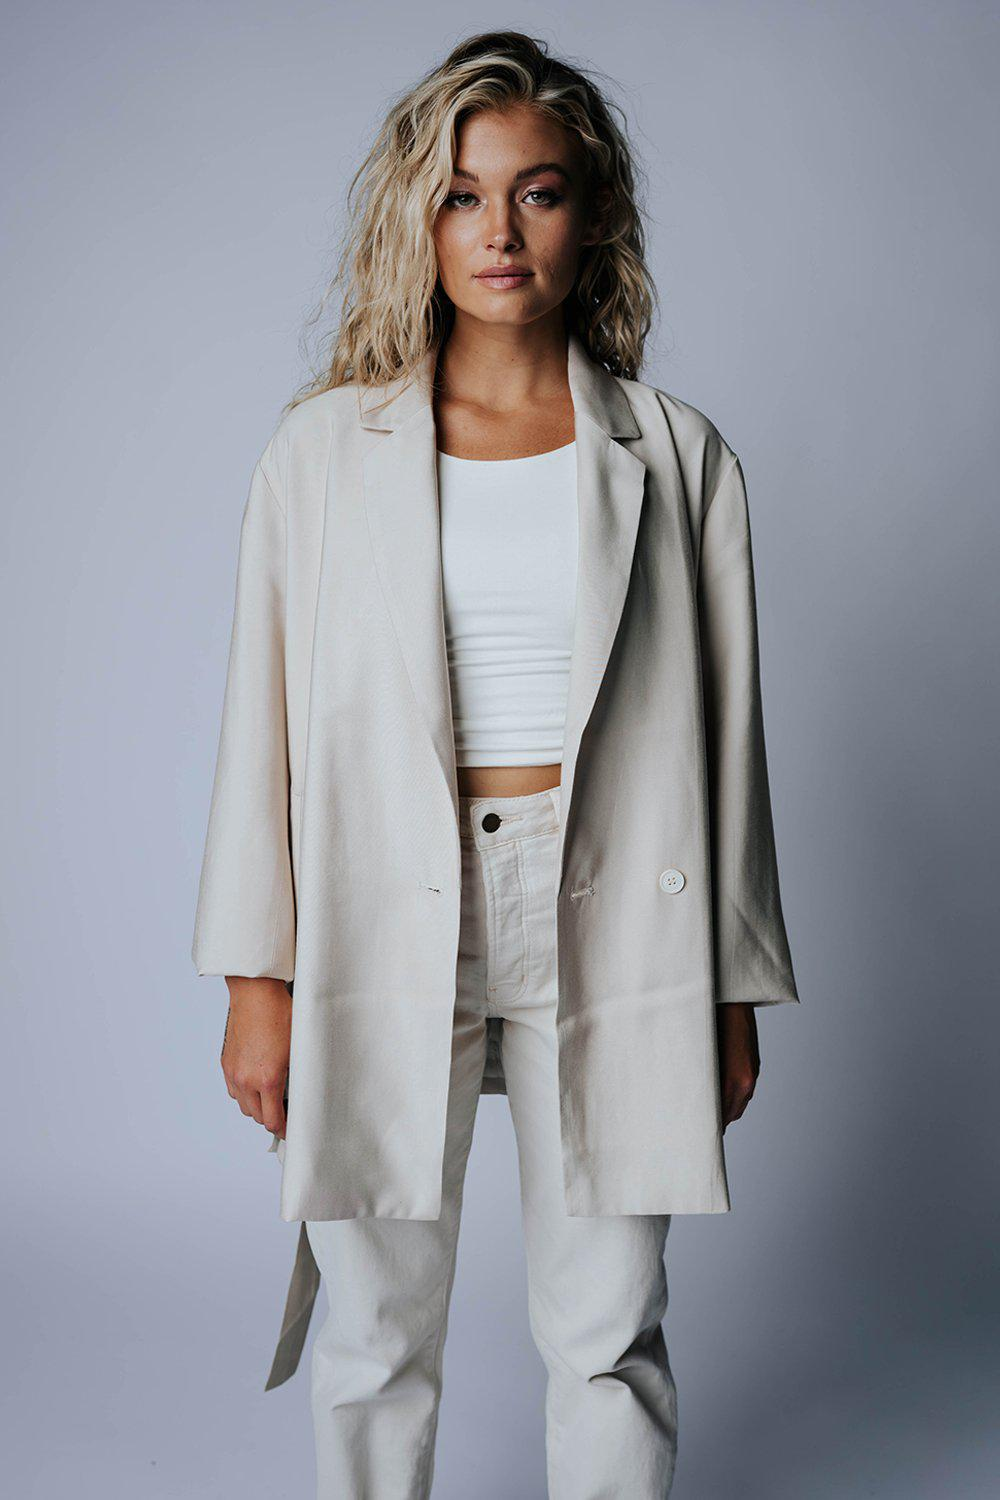 best_seller, Manhattan Street Blazer, Top, women's clothing, dresses, skirts, coats, jackets, shoes, boots, tops, tee shirts, jeans, free people, levi's, rollas, jumpsuits, bottoms, tops, sweaters, pullovers, pants, shorts, sweats,.